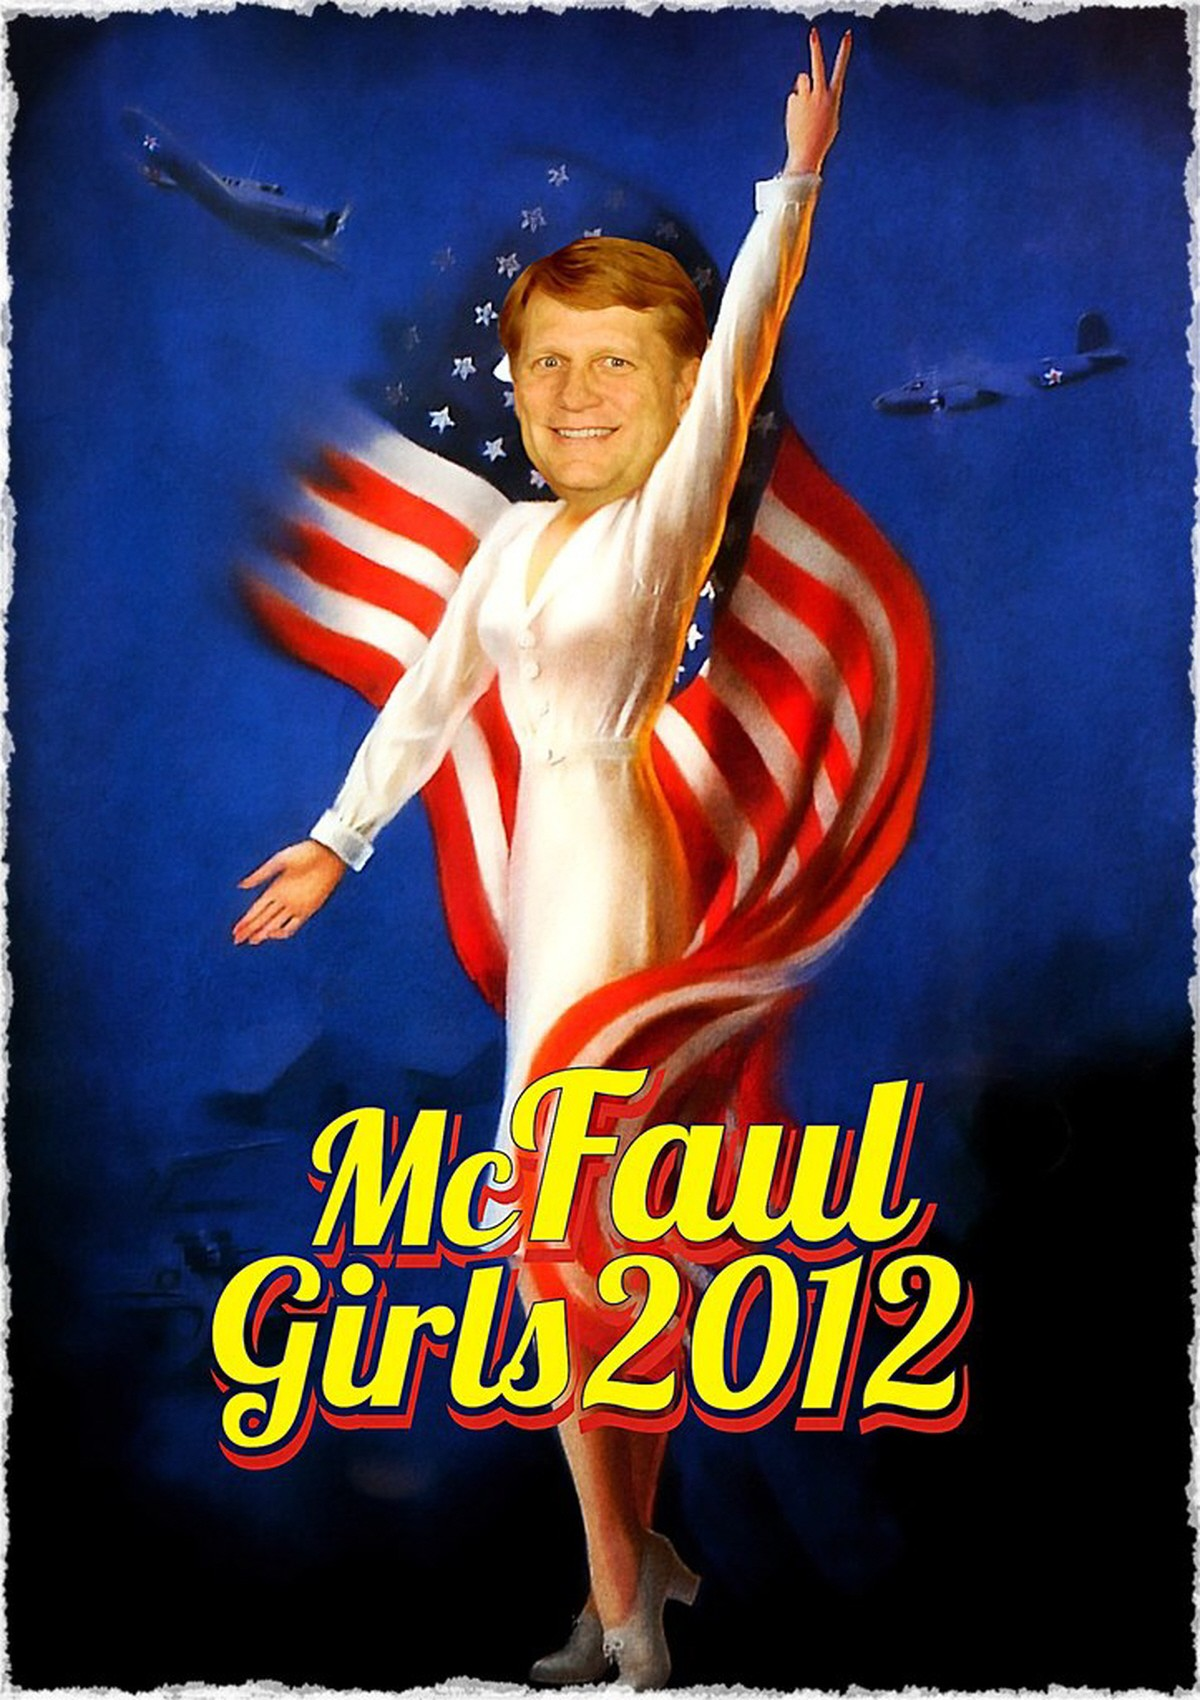 00 Russian caricature of Michael McFaul. 06.12